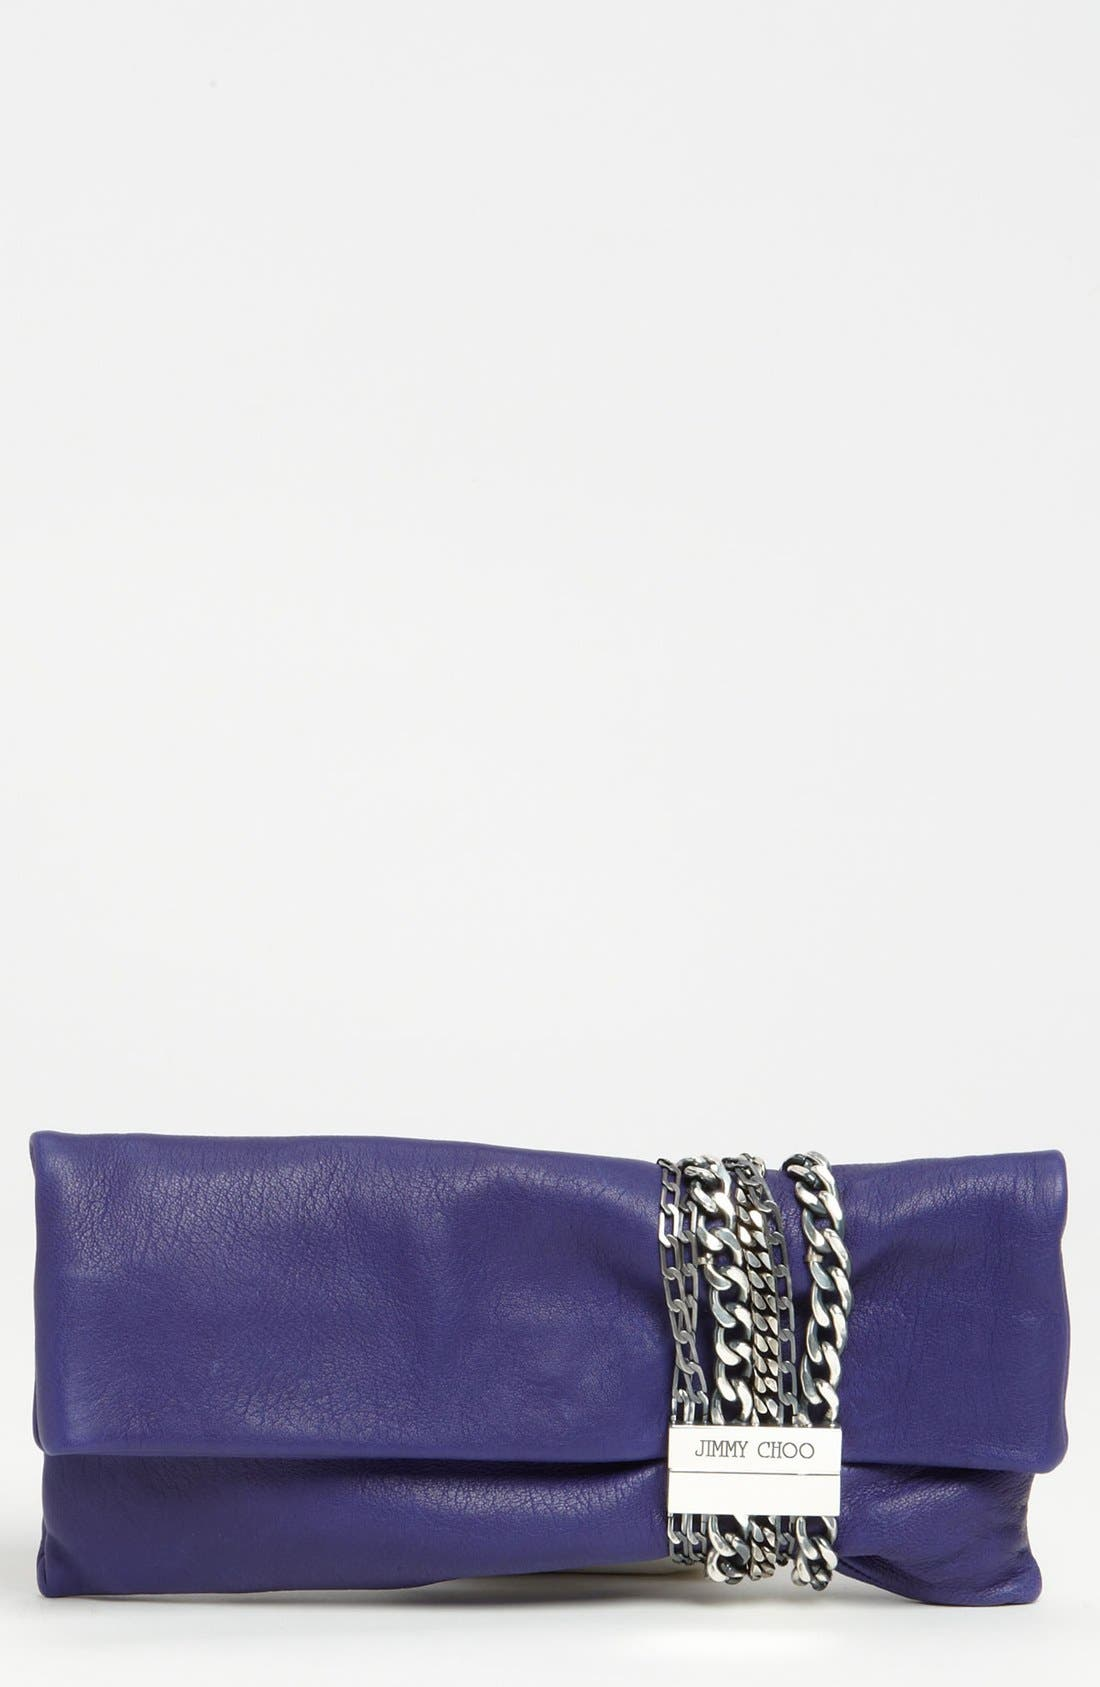 Main Image - Jimmy Choo 'Chandra' Leather Clutch